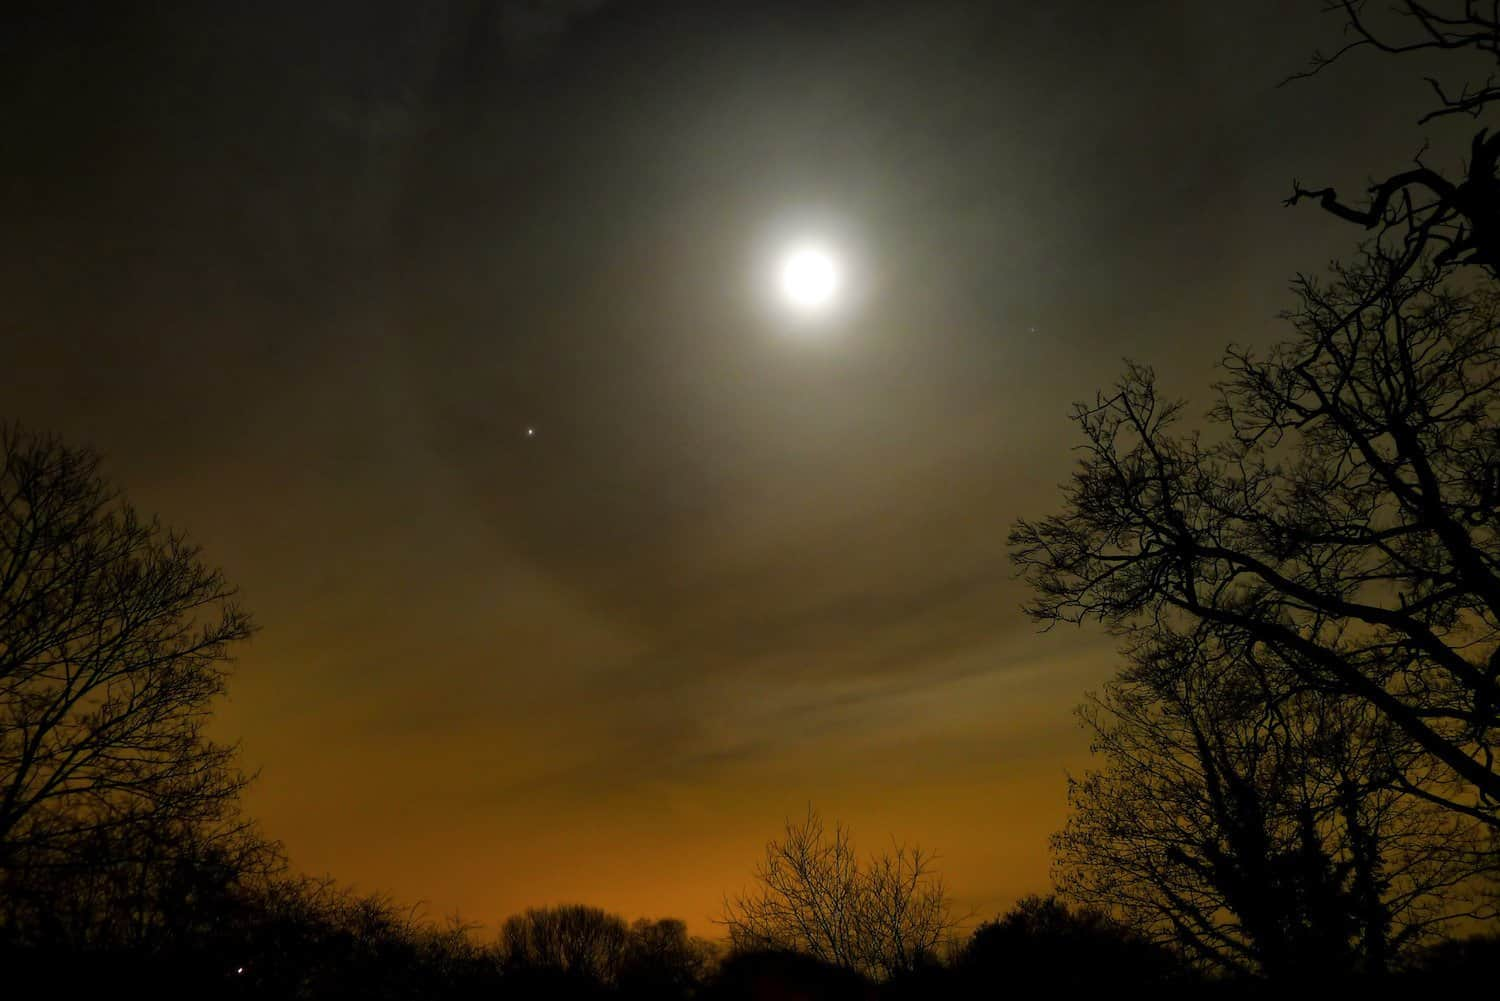 Night Sky in February - Moon & Jupiter - Timo Newton-Syms via Flickr